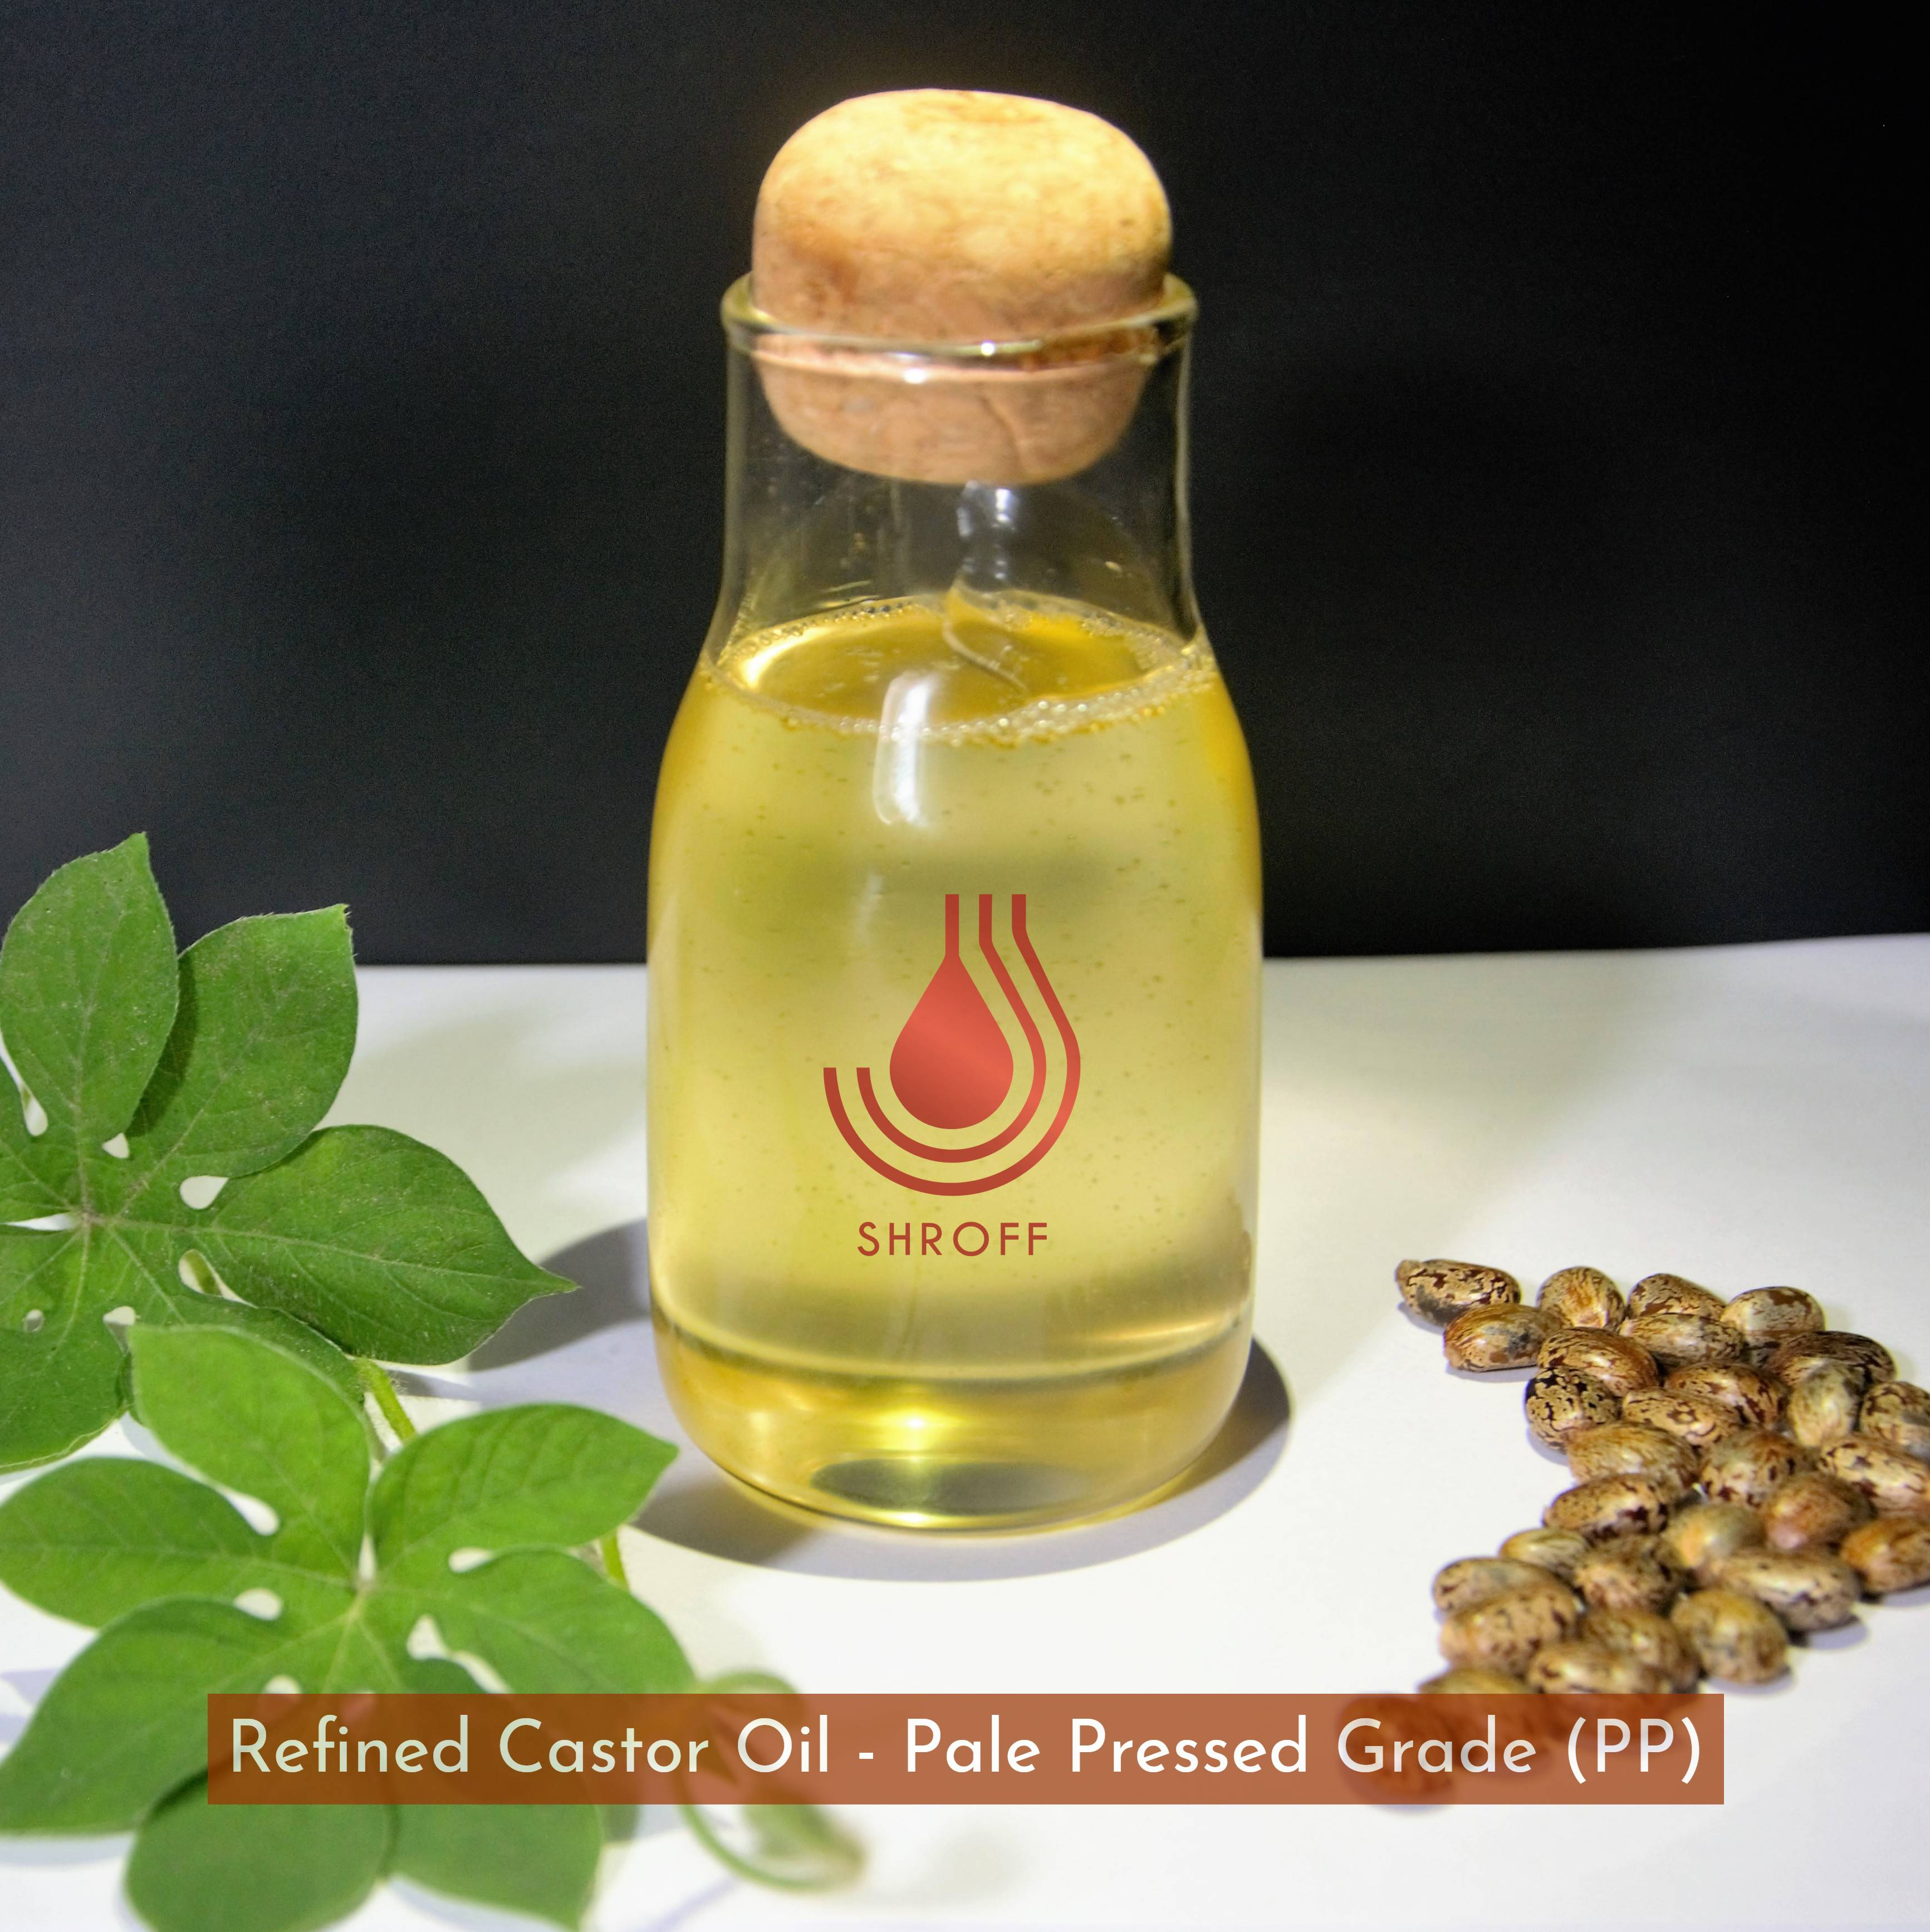 Refined Castor Oil - Pale Pressed Grade (PP)